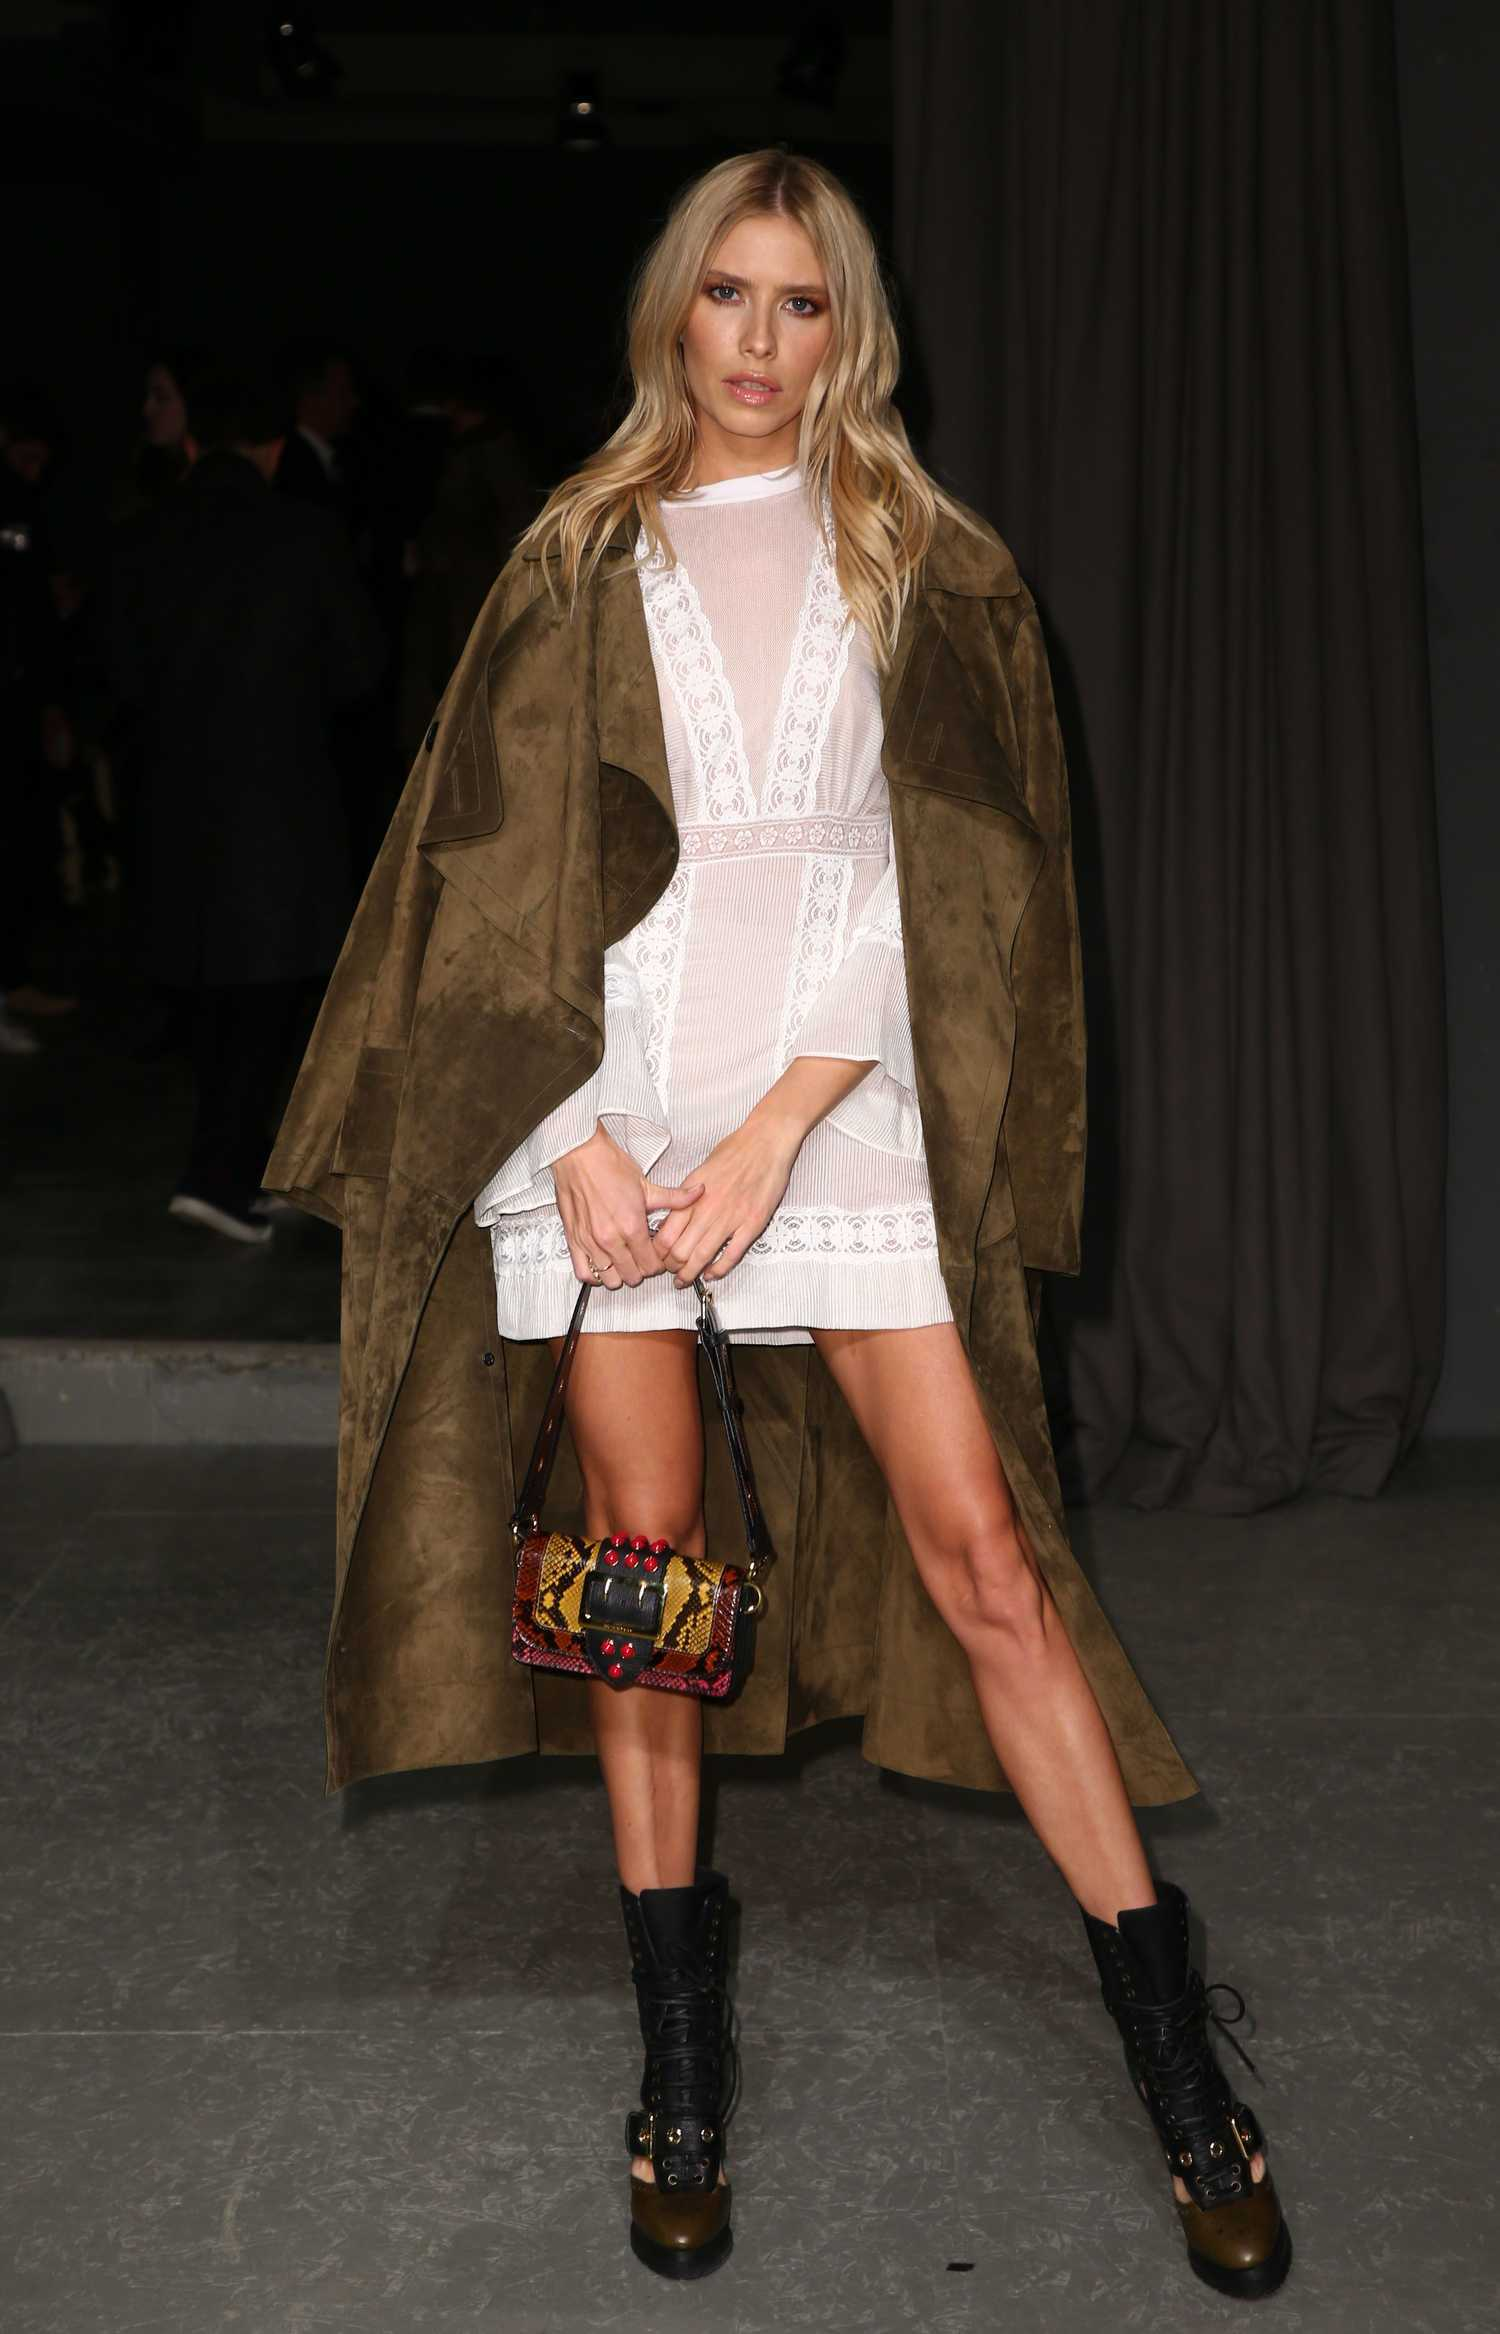 Elena perminova at the burberry show during the london fashion week celeb donut - Burberry fashion show ...